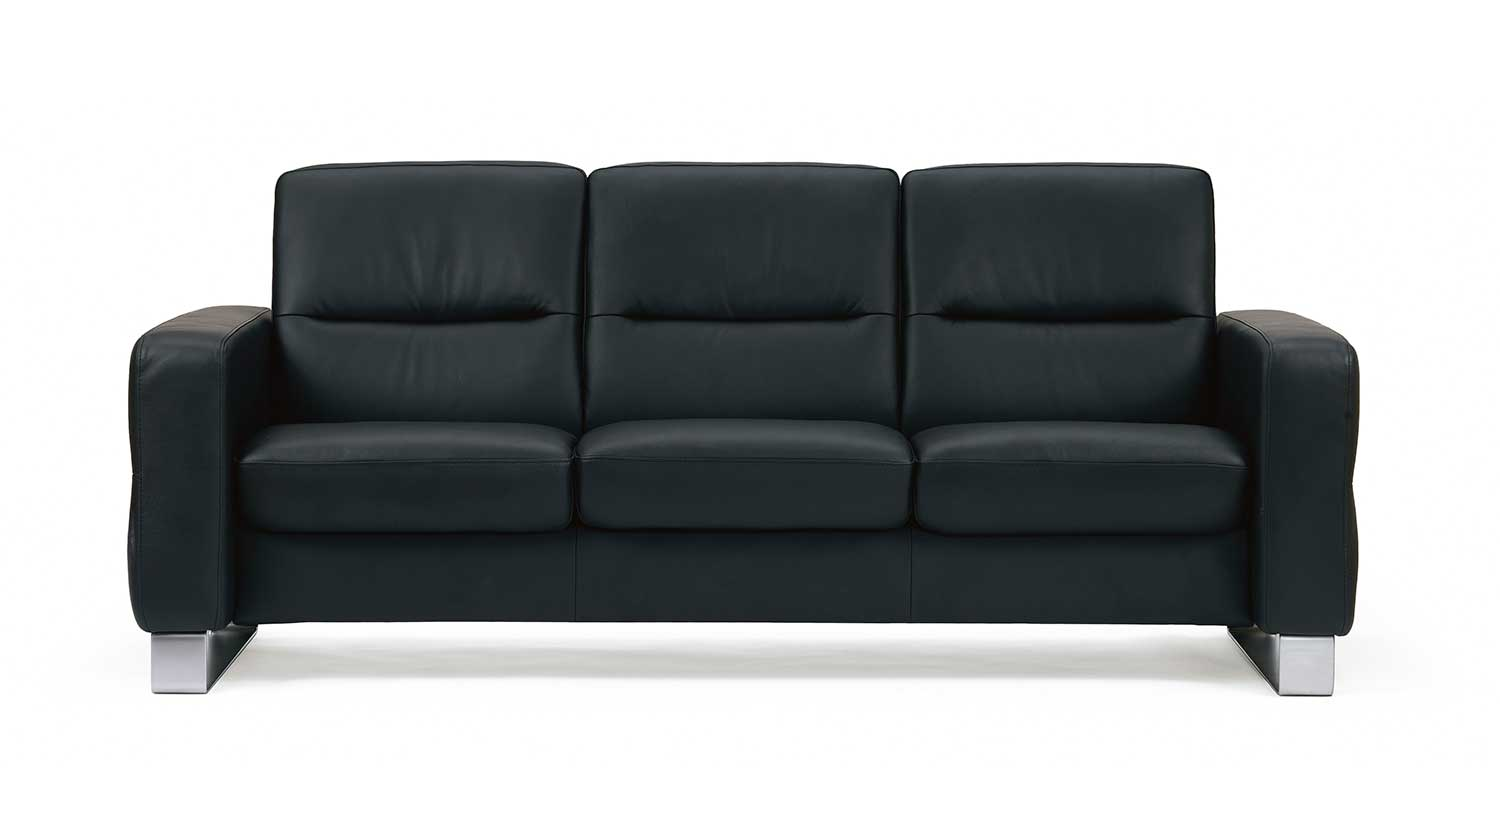 stressless wave sofa reviews sofa. Black Bedroom Furniture Sets. Home Design Ideas